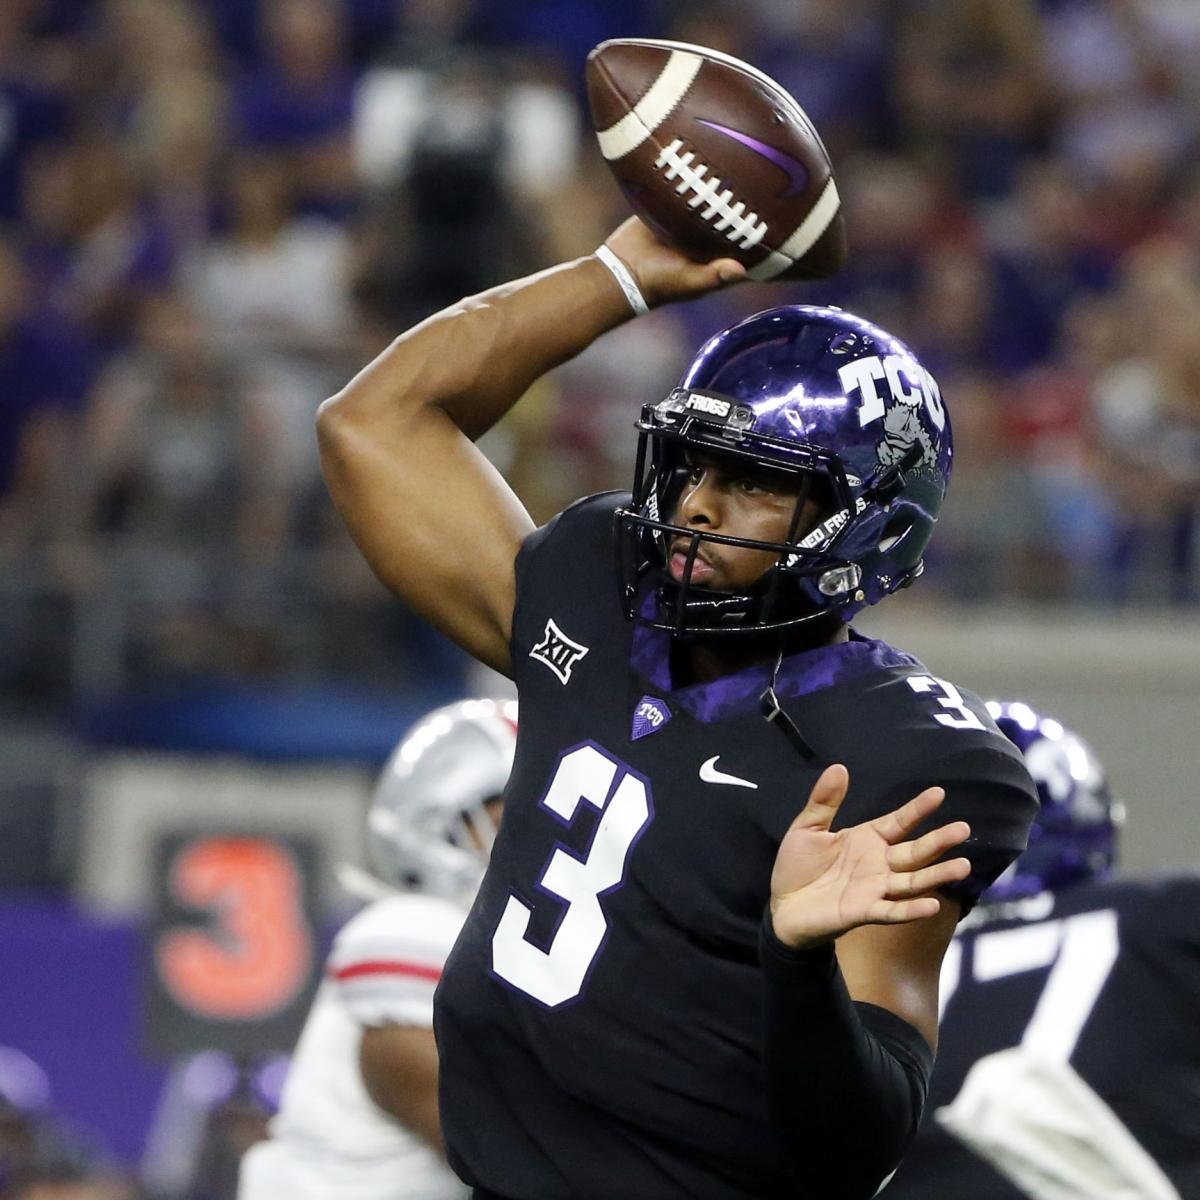 TCU Horned Frogs vs. Texas Longhorns Odds, College ...